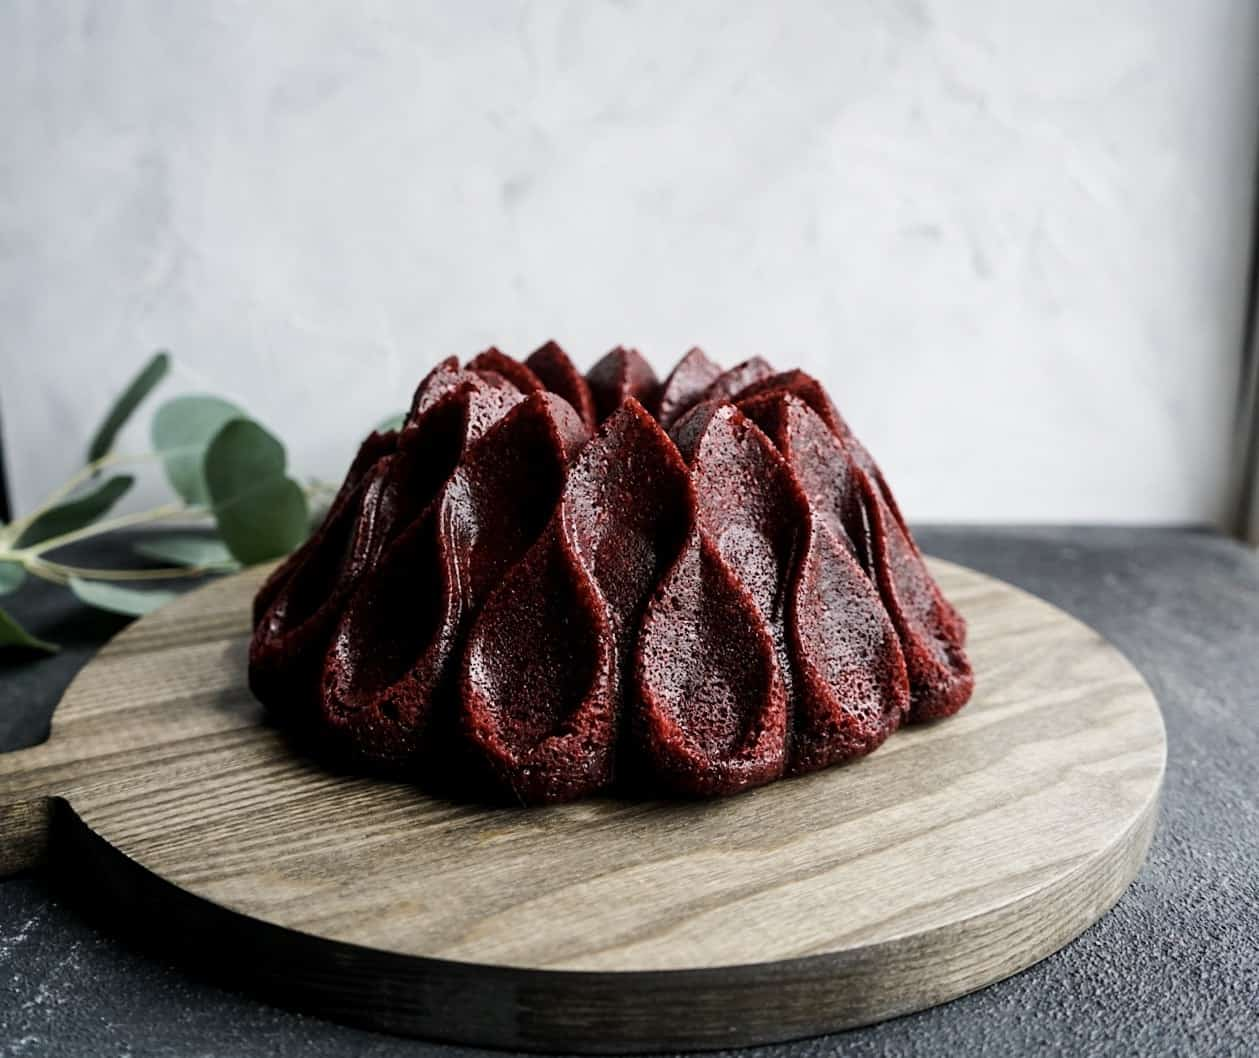 red velvet cream cheese bundt cake baked and removed from pan